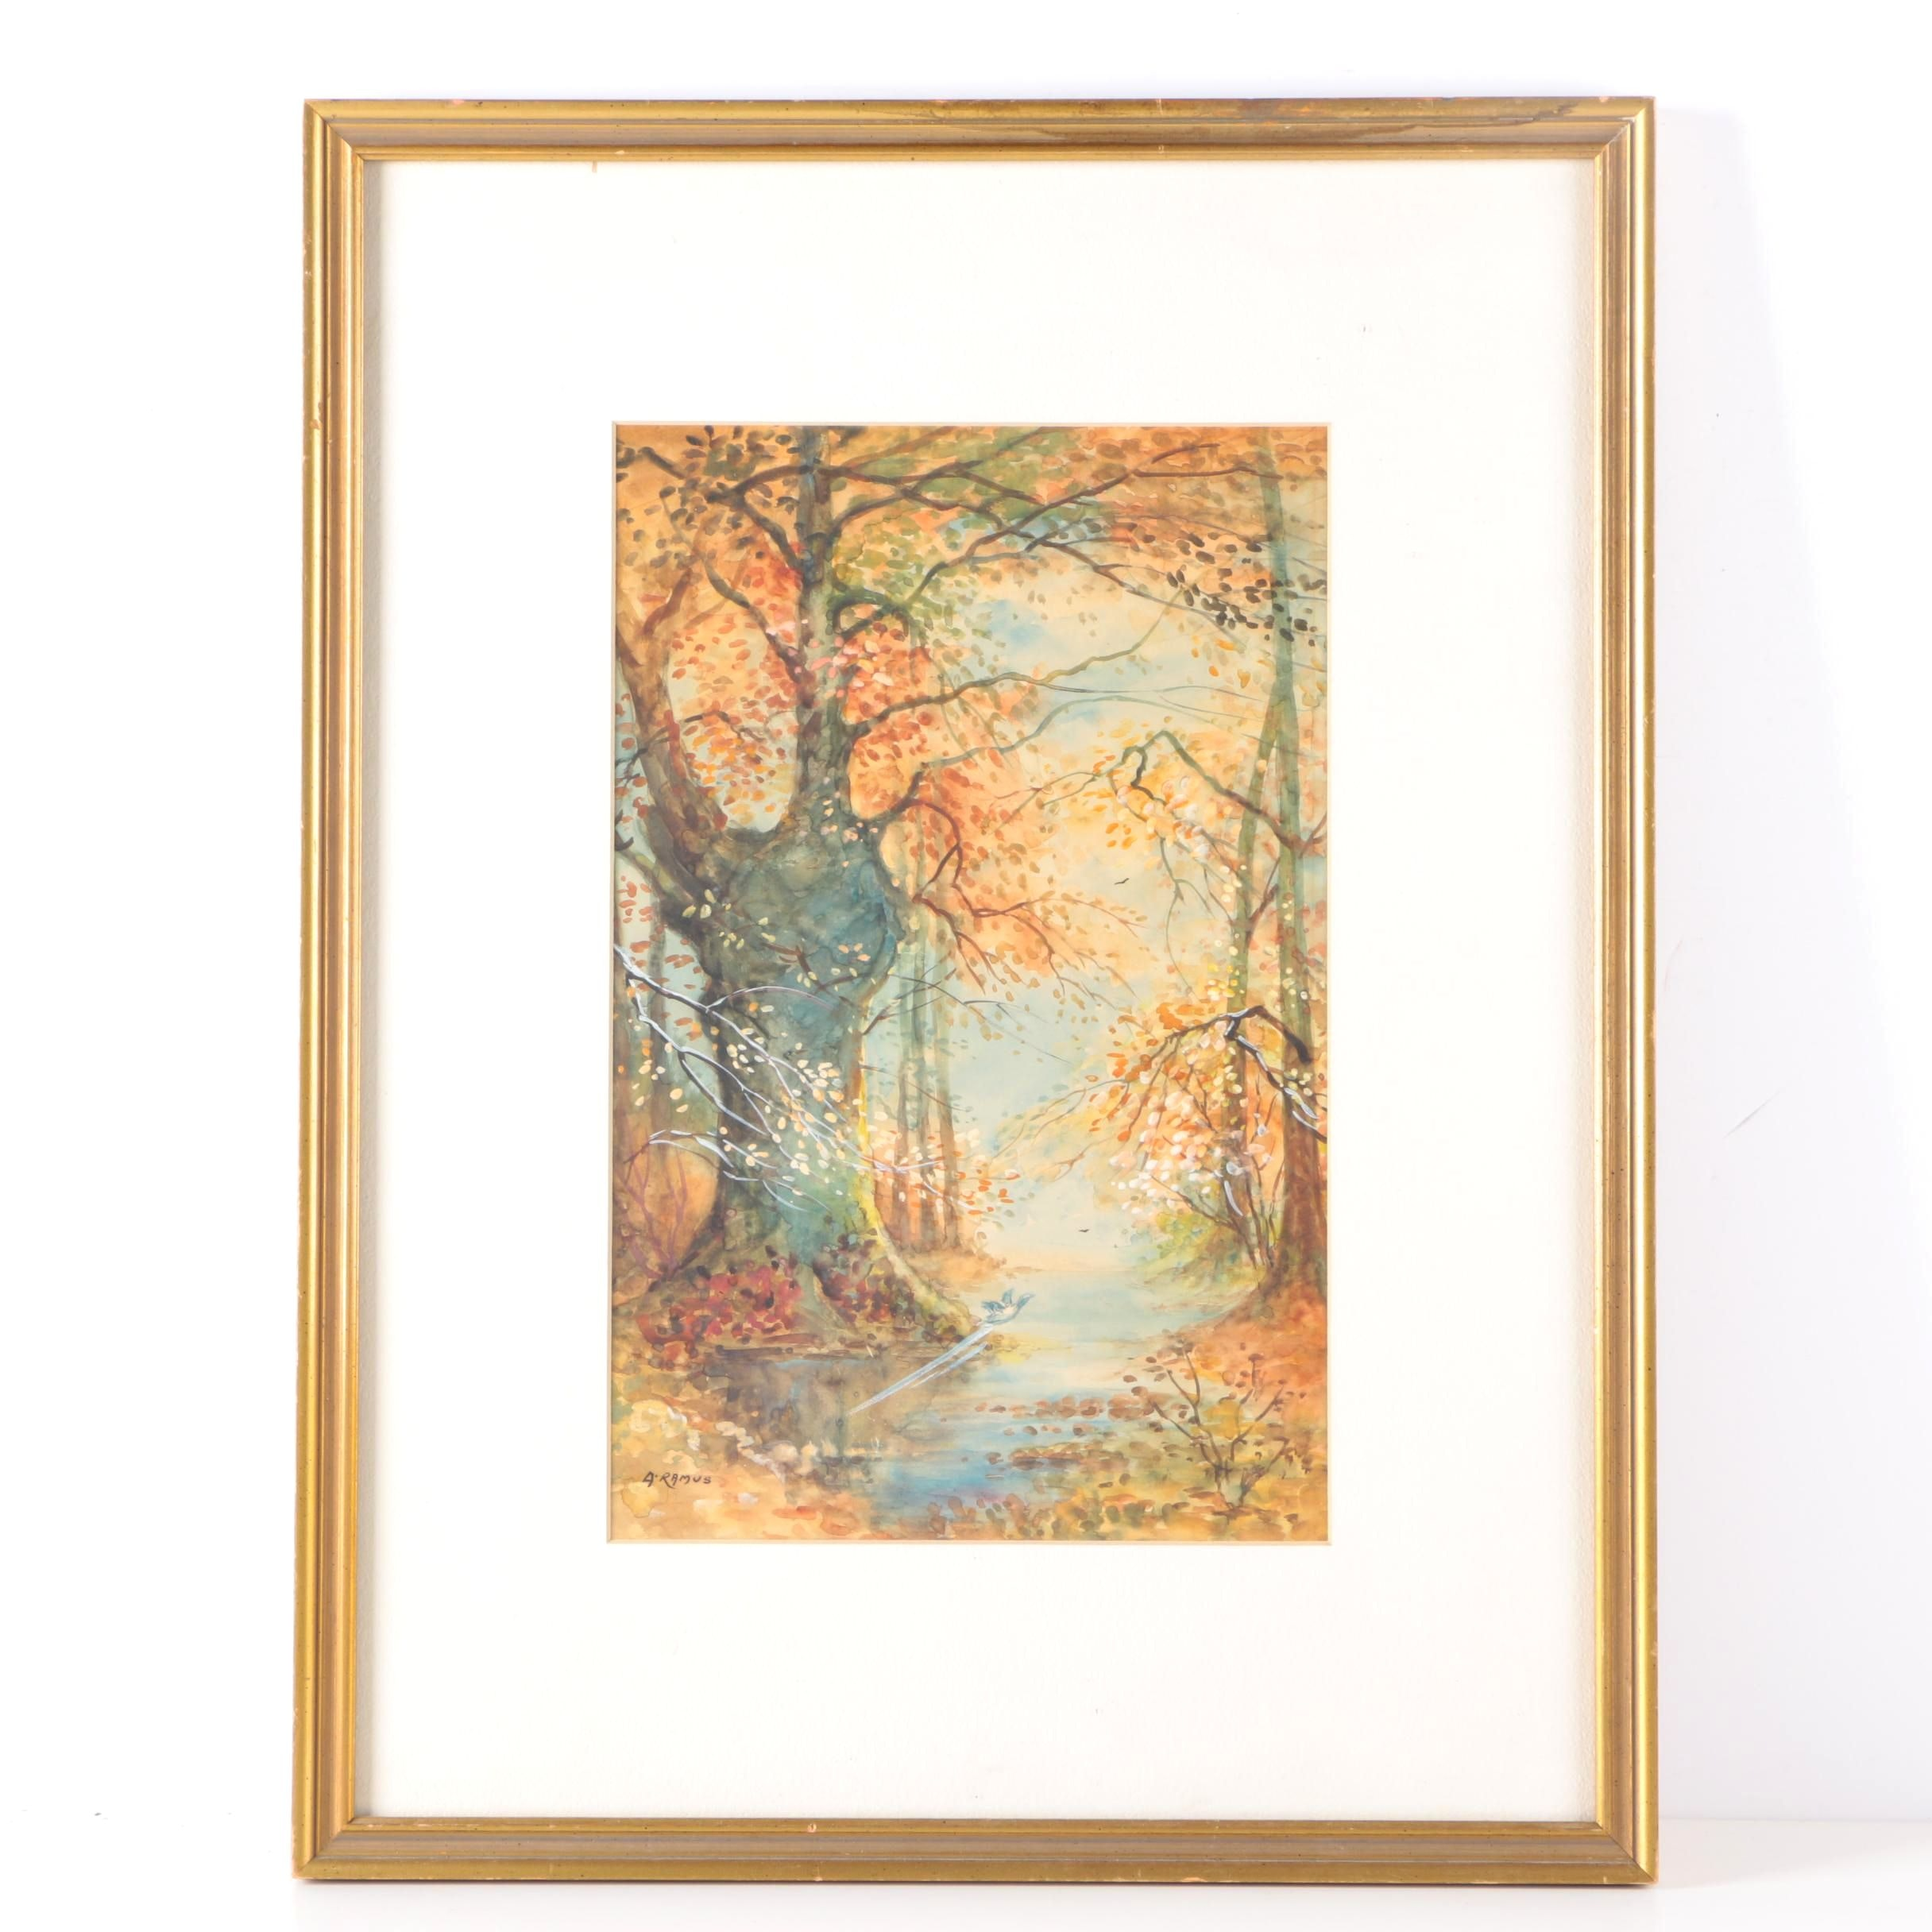 A. Ramus Gouache and Watercolor of Autumn Forest